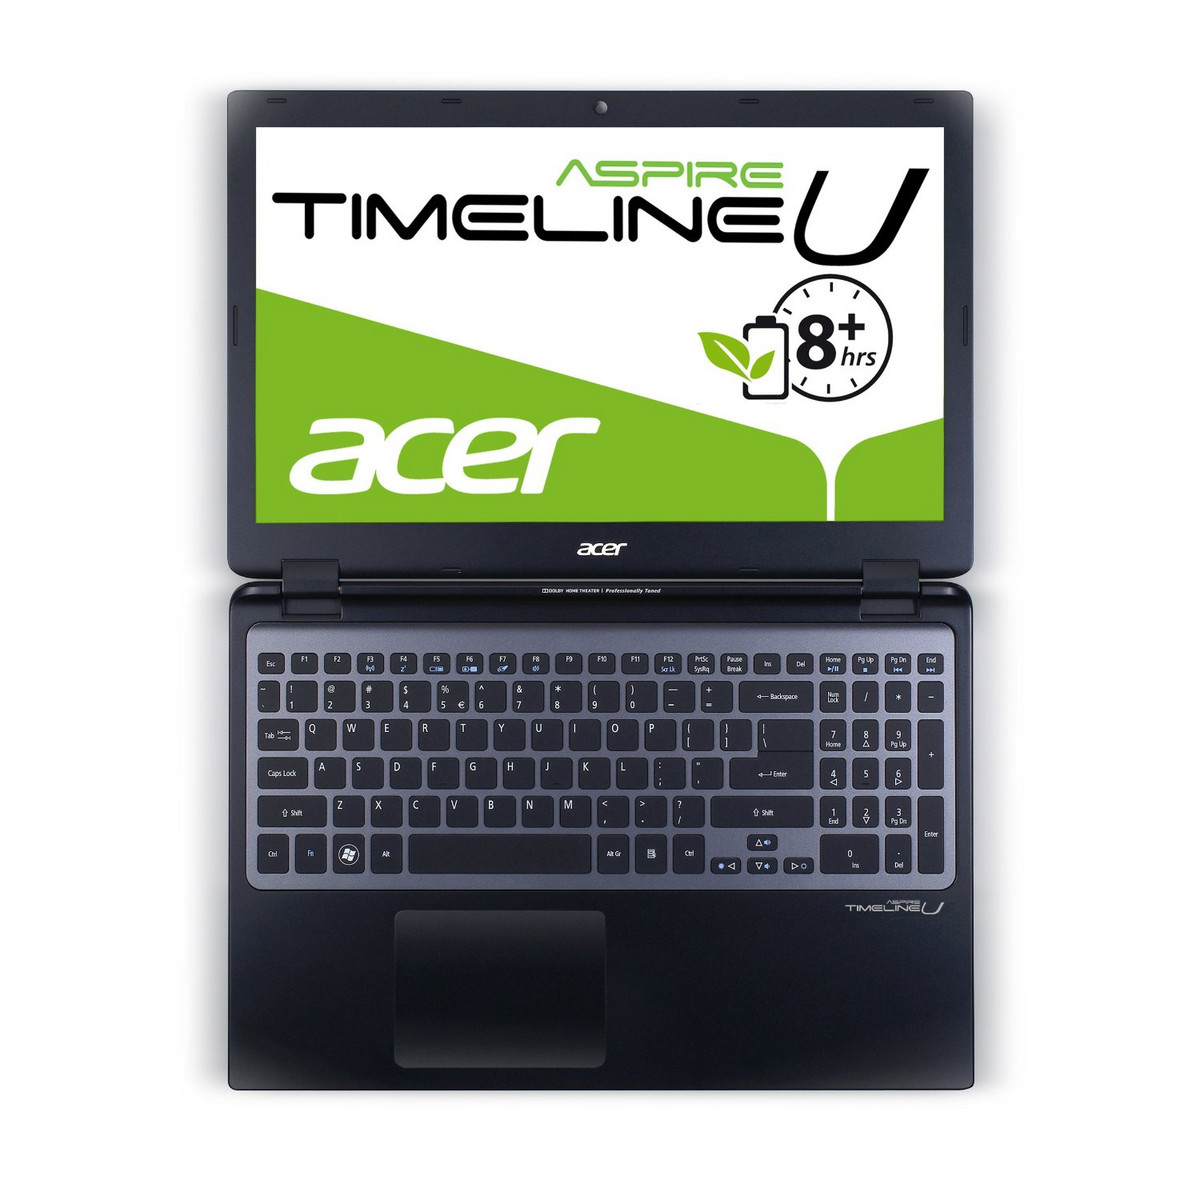 DRIVER FOR ACER ASPIRE M3-581T NVIDIA GRAPHICS